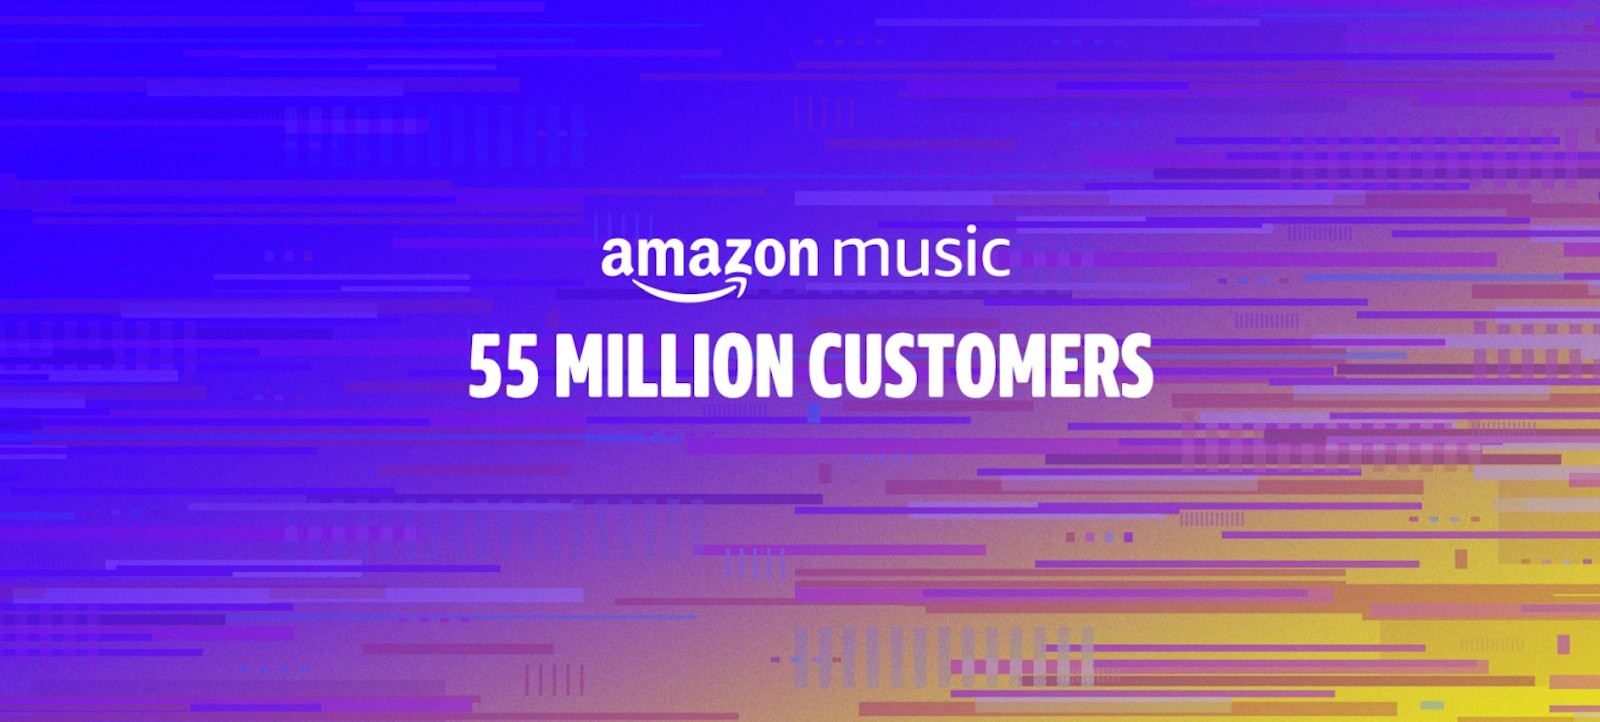 Amazon Music Number of users